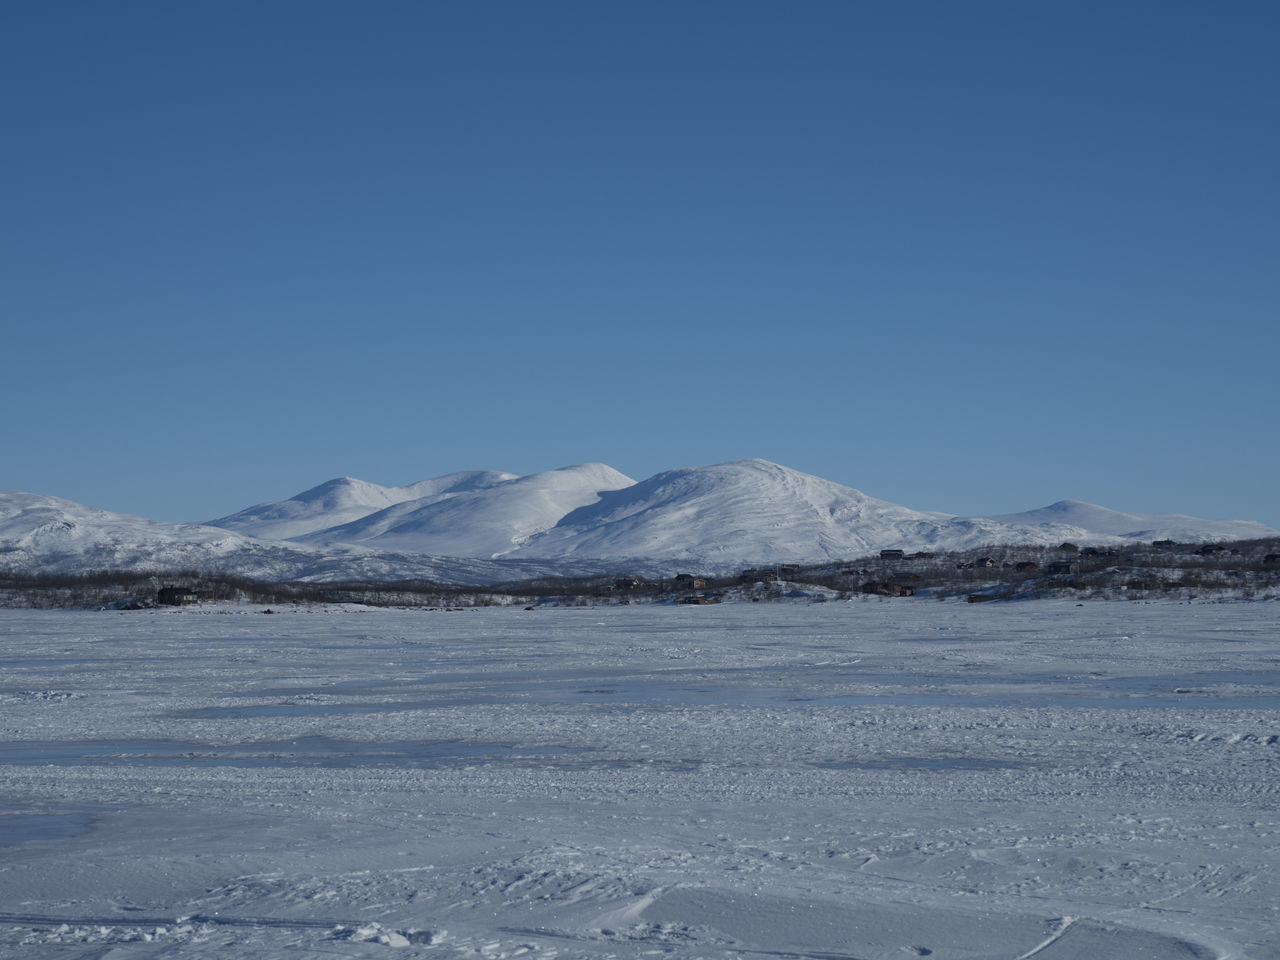 Abisko Beauty In Nature Day FootPrint Frozen Lake Icicles Mountains Nature No People Outdoors Snow Winter